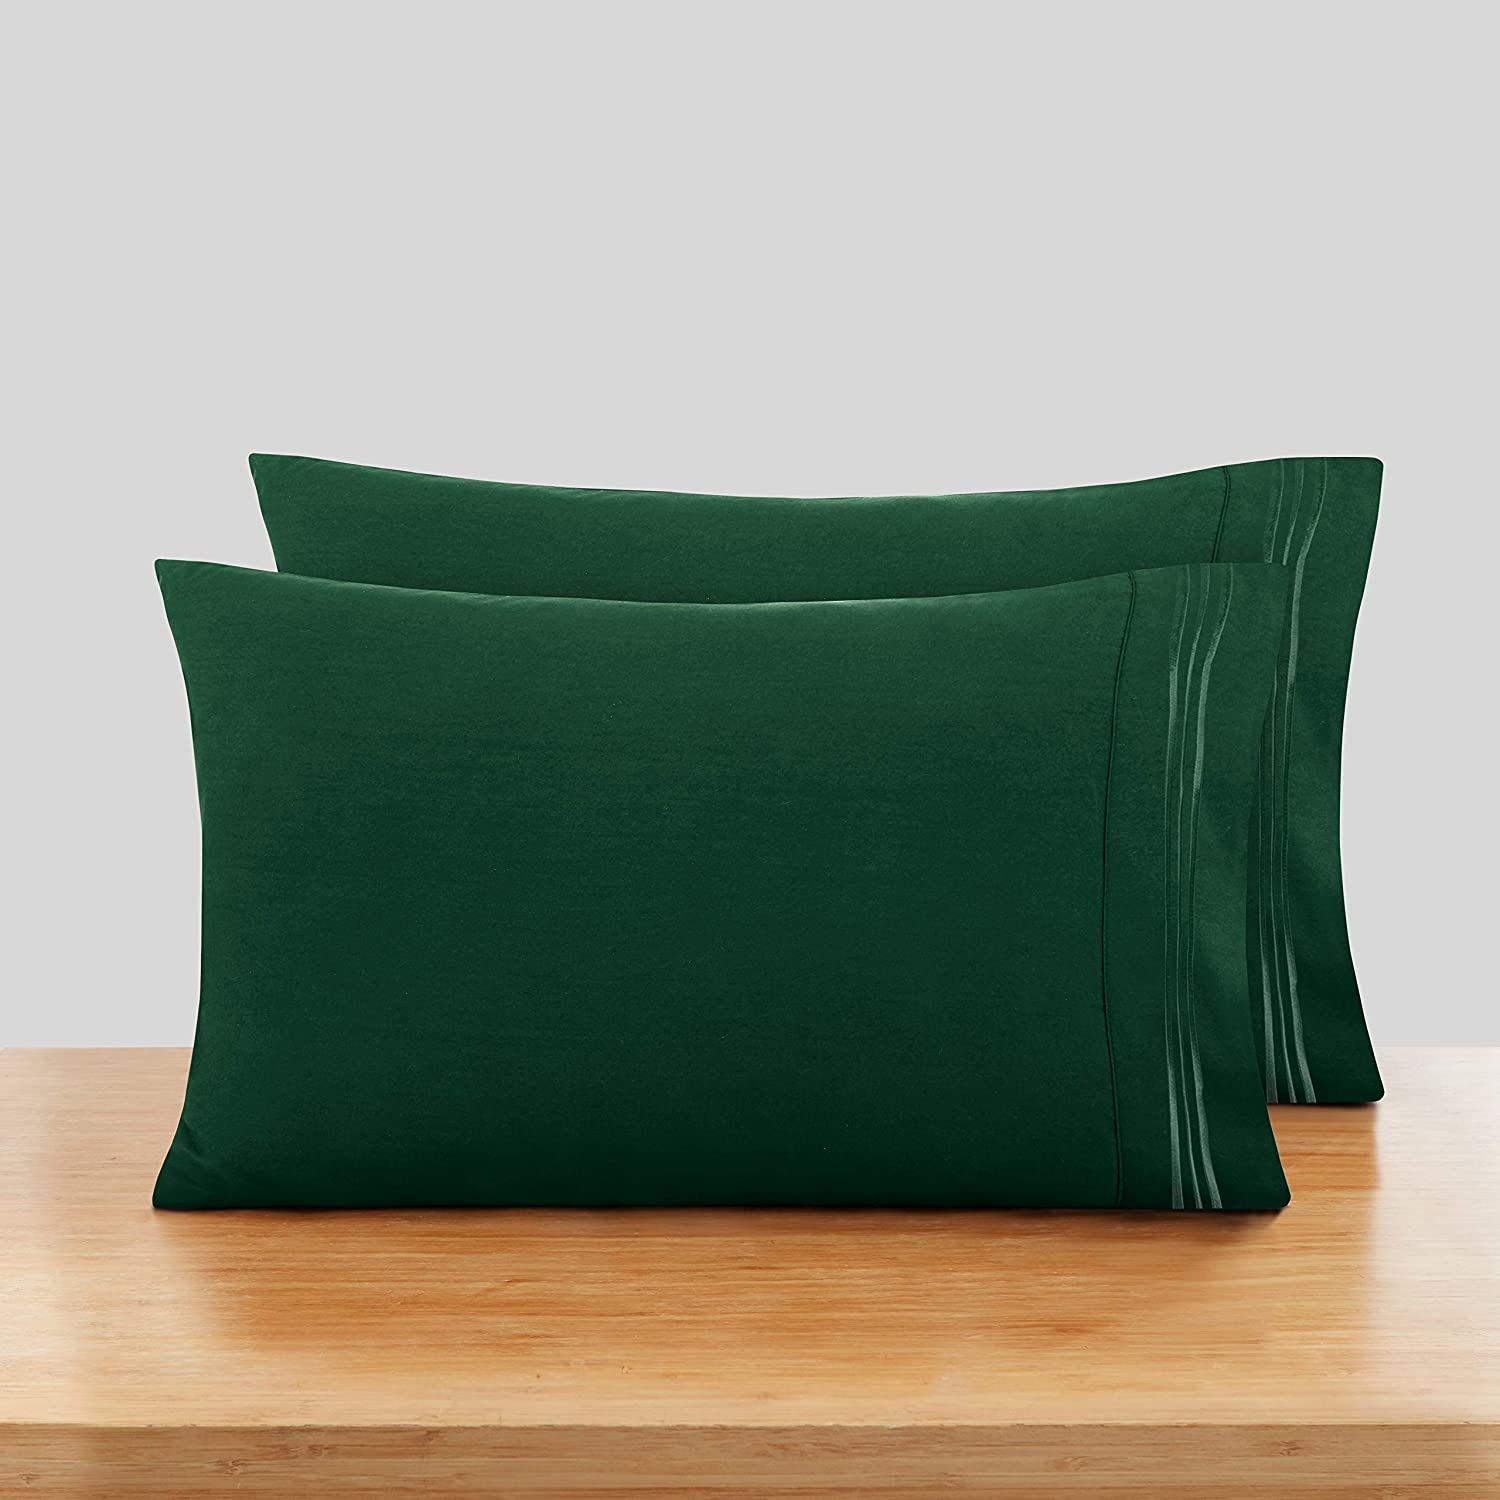 Nestl Bedding Soft Pillow Case Set of 2 - Double Brushed Microfiber Hypoallergenic Pillow Covers - 1800 Series Premium Bed Pillow Cases, Standard/Queen - Hunter Green